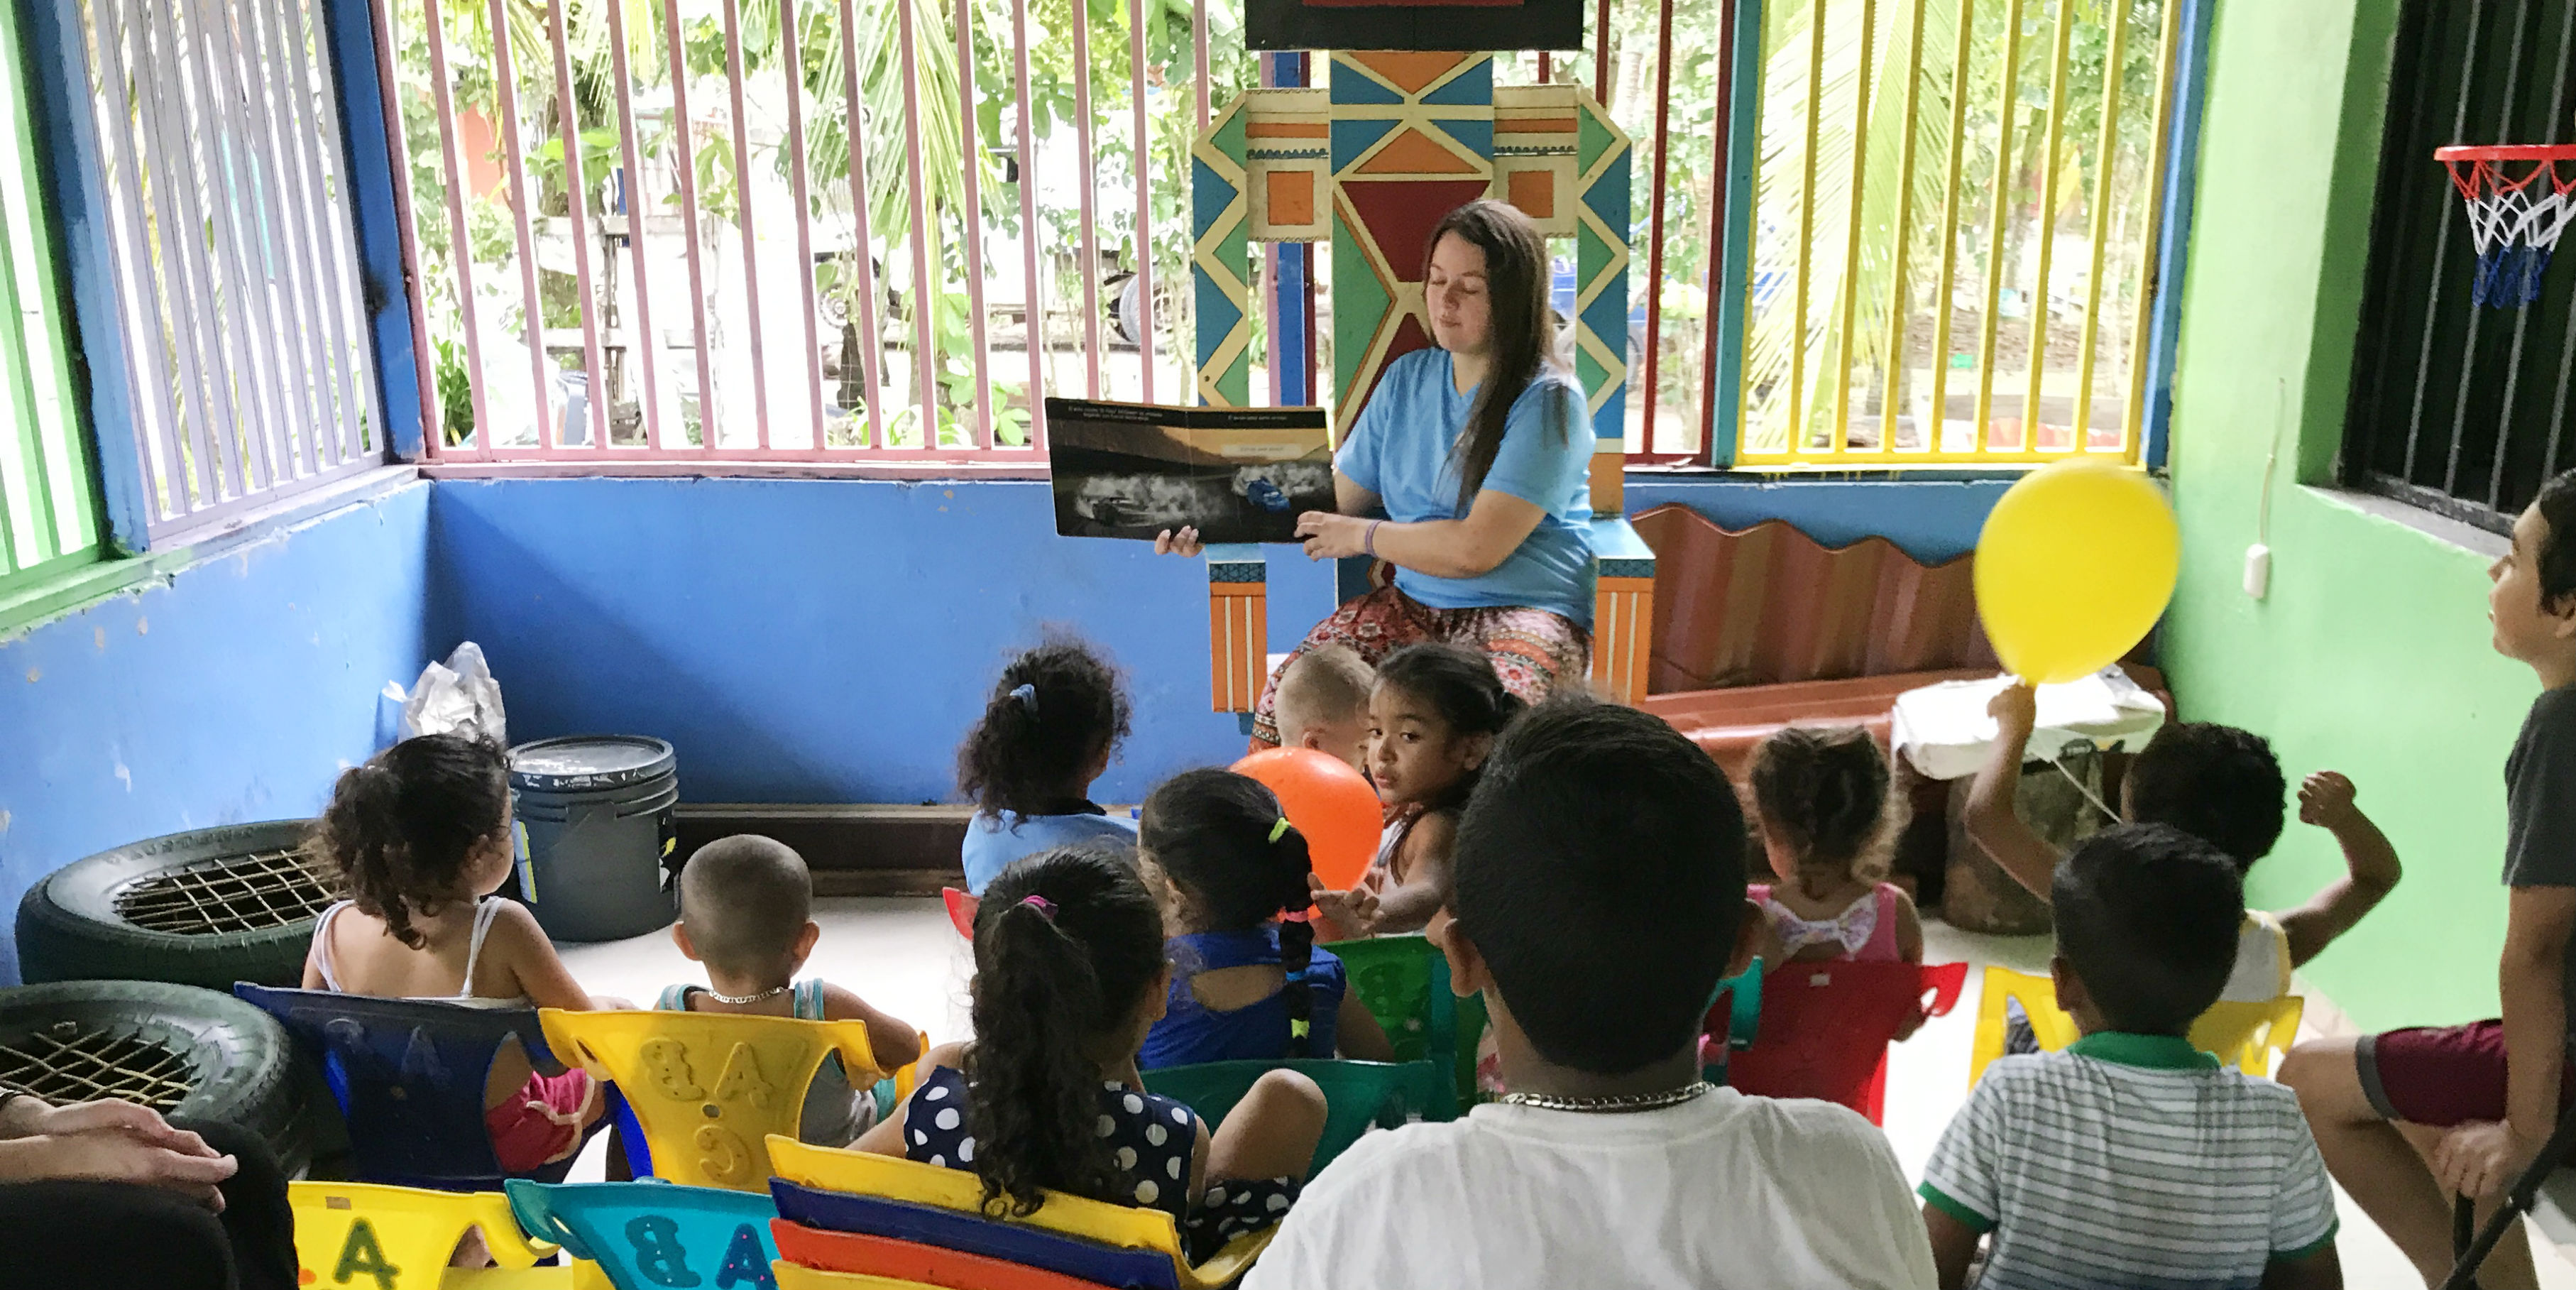 A GVI participant reads to learners in Quepos, Costa Rica. Teaching experience is one of the many gap year benefits.